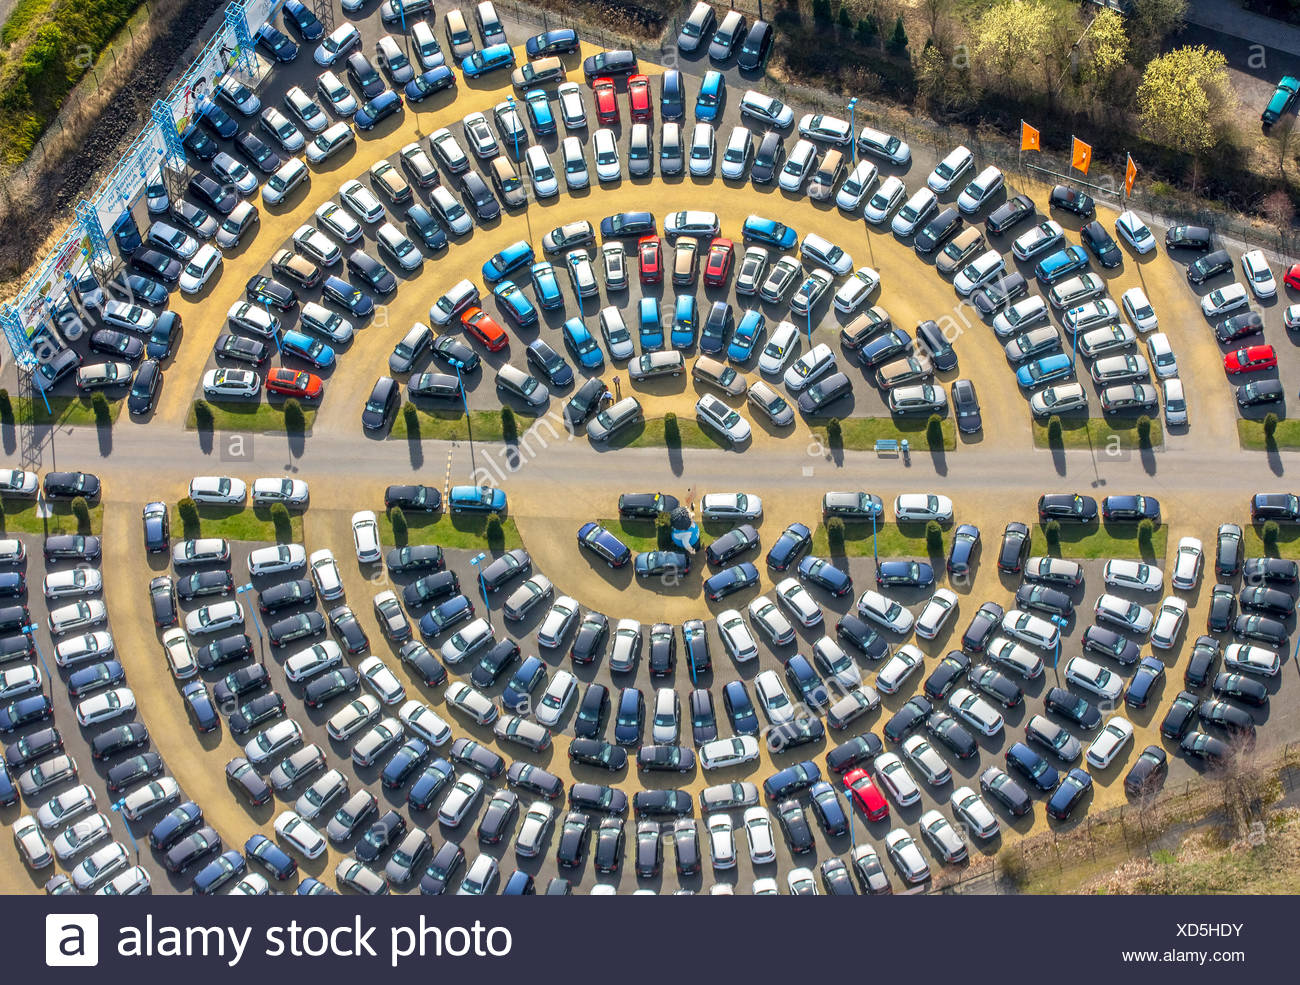 Parked cars, circular parking area, Hamm, Ruhr district, North Rhine-Westphalia, Germany - Stock Image